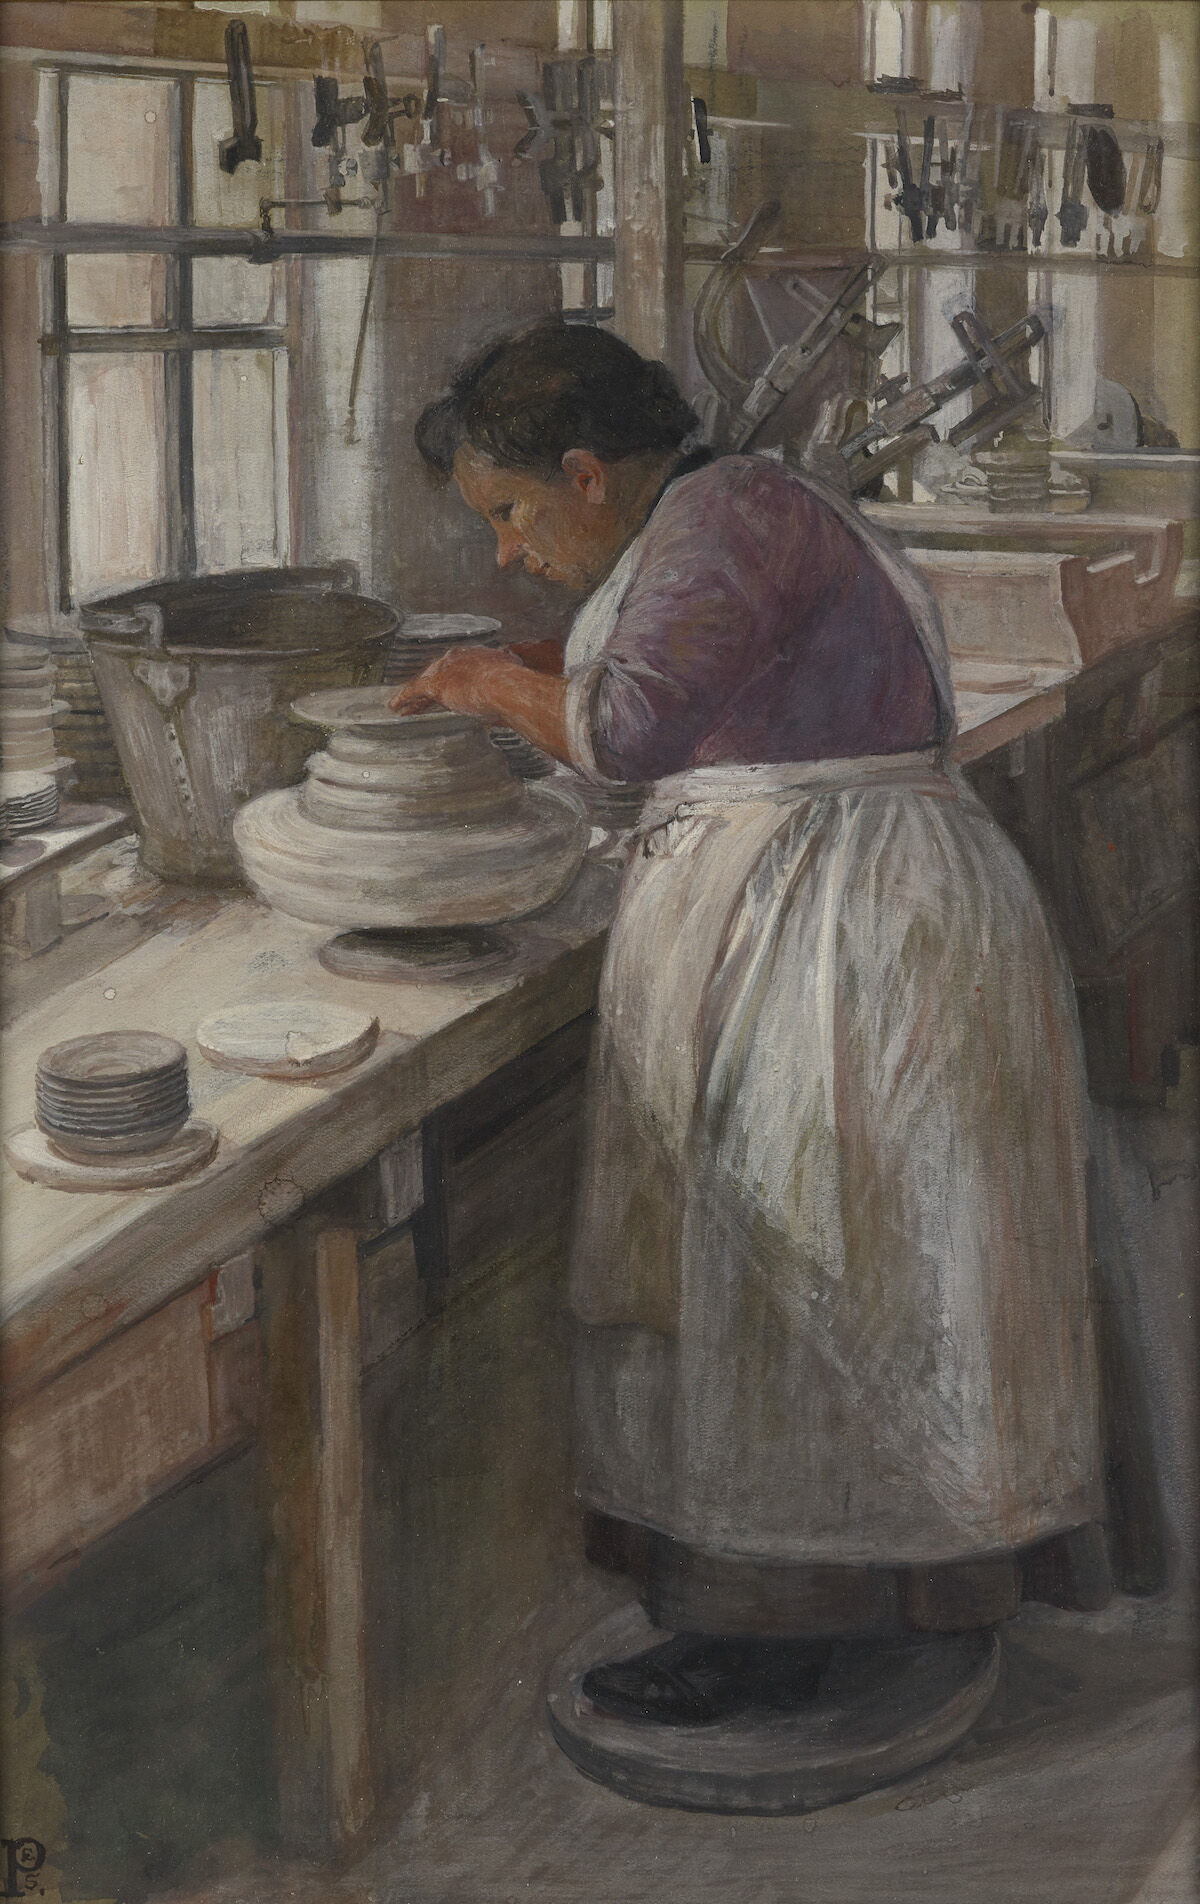 Sylvia Pankhurst, On a Pot Bank: Finishing Off the Edges of the Unbaked Plates on a Whirler, 1907. Courtesy Tate Britain.